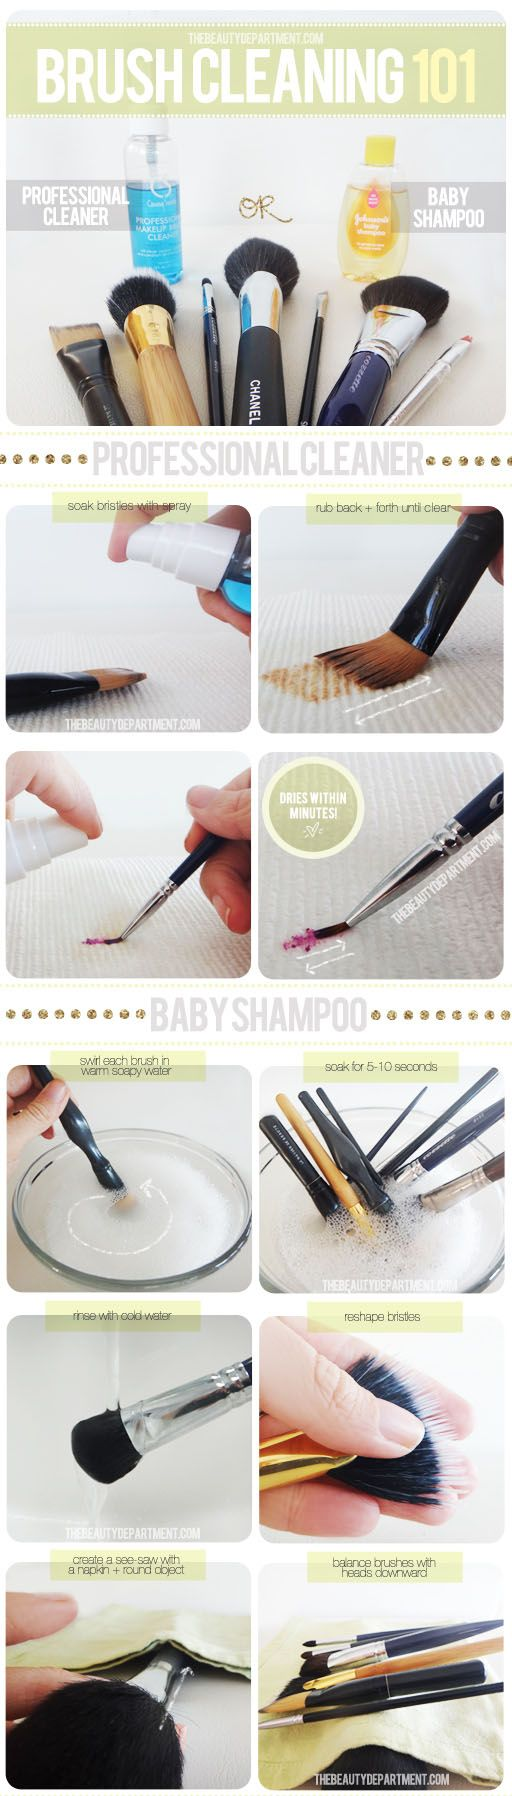 HOW TO PROPERLY WASH YOUR Make up BRUSHES #diy #makeup #beauty